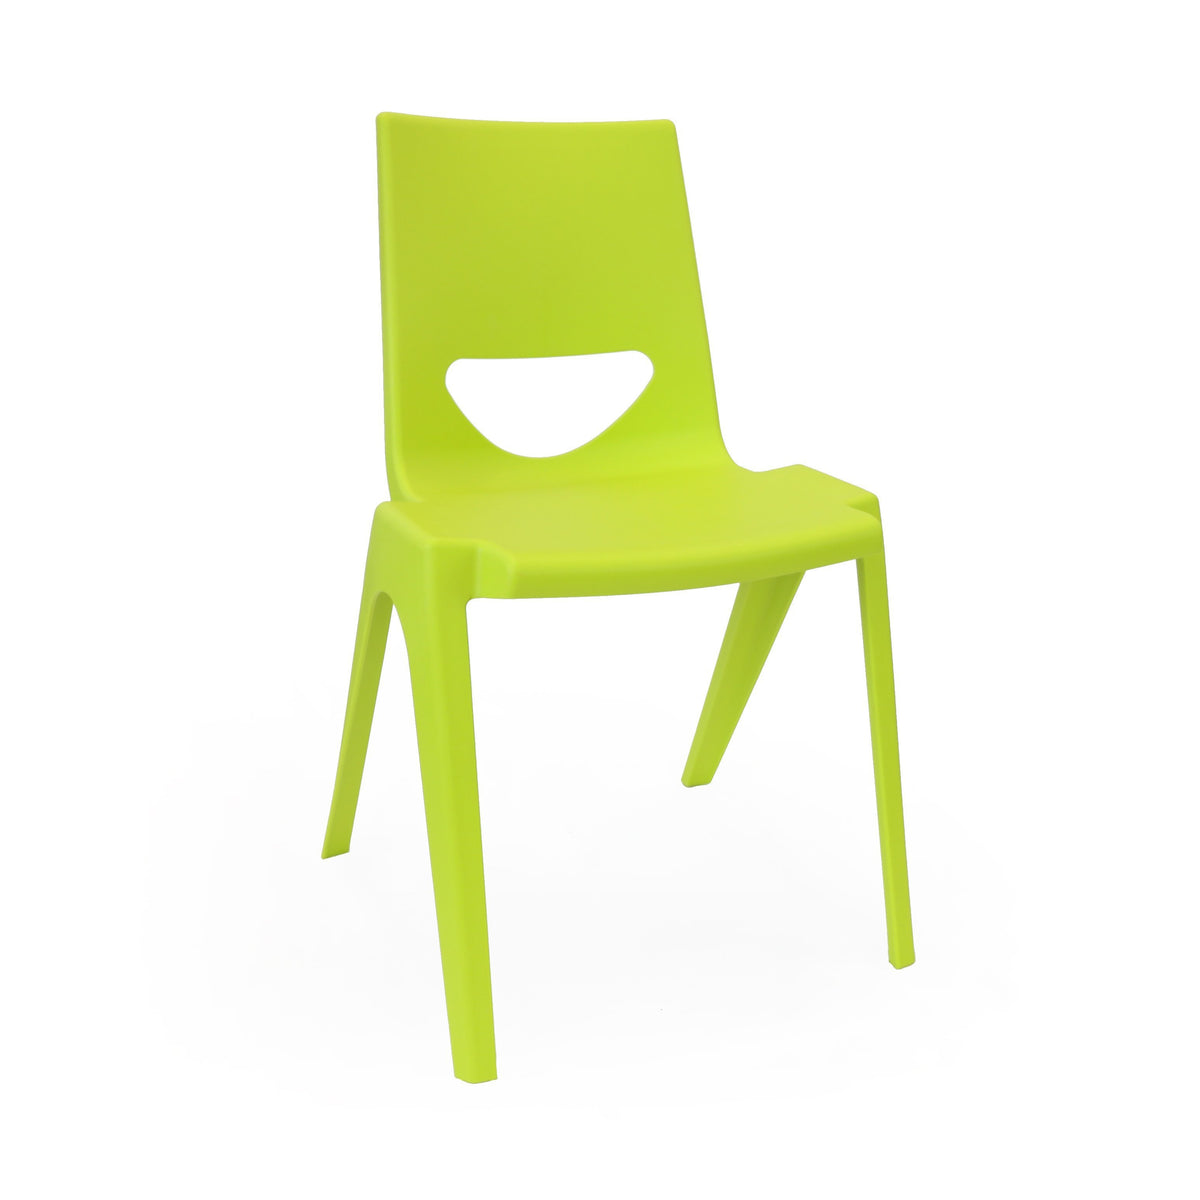 classroom chairs Size 5 - Seat Height 430 mm EN One Classroom Chair Size 5 - Seat Height 430 mm